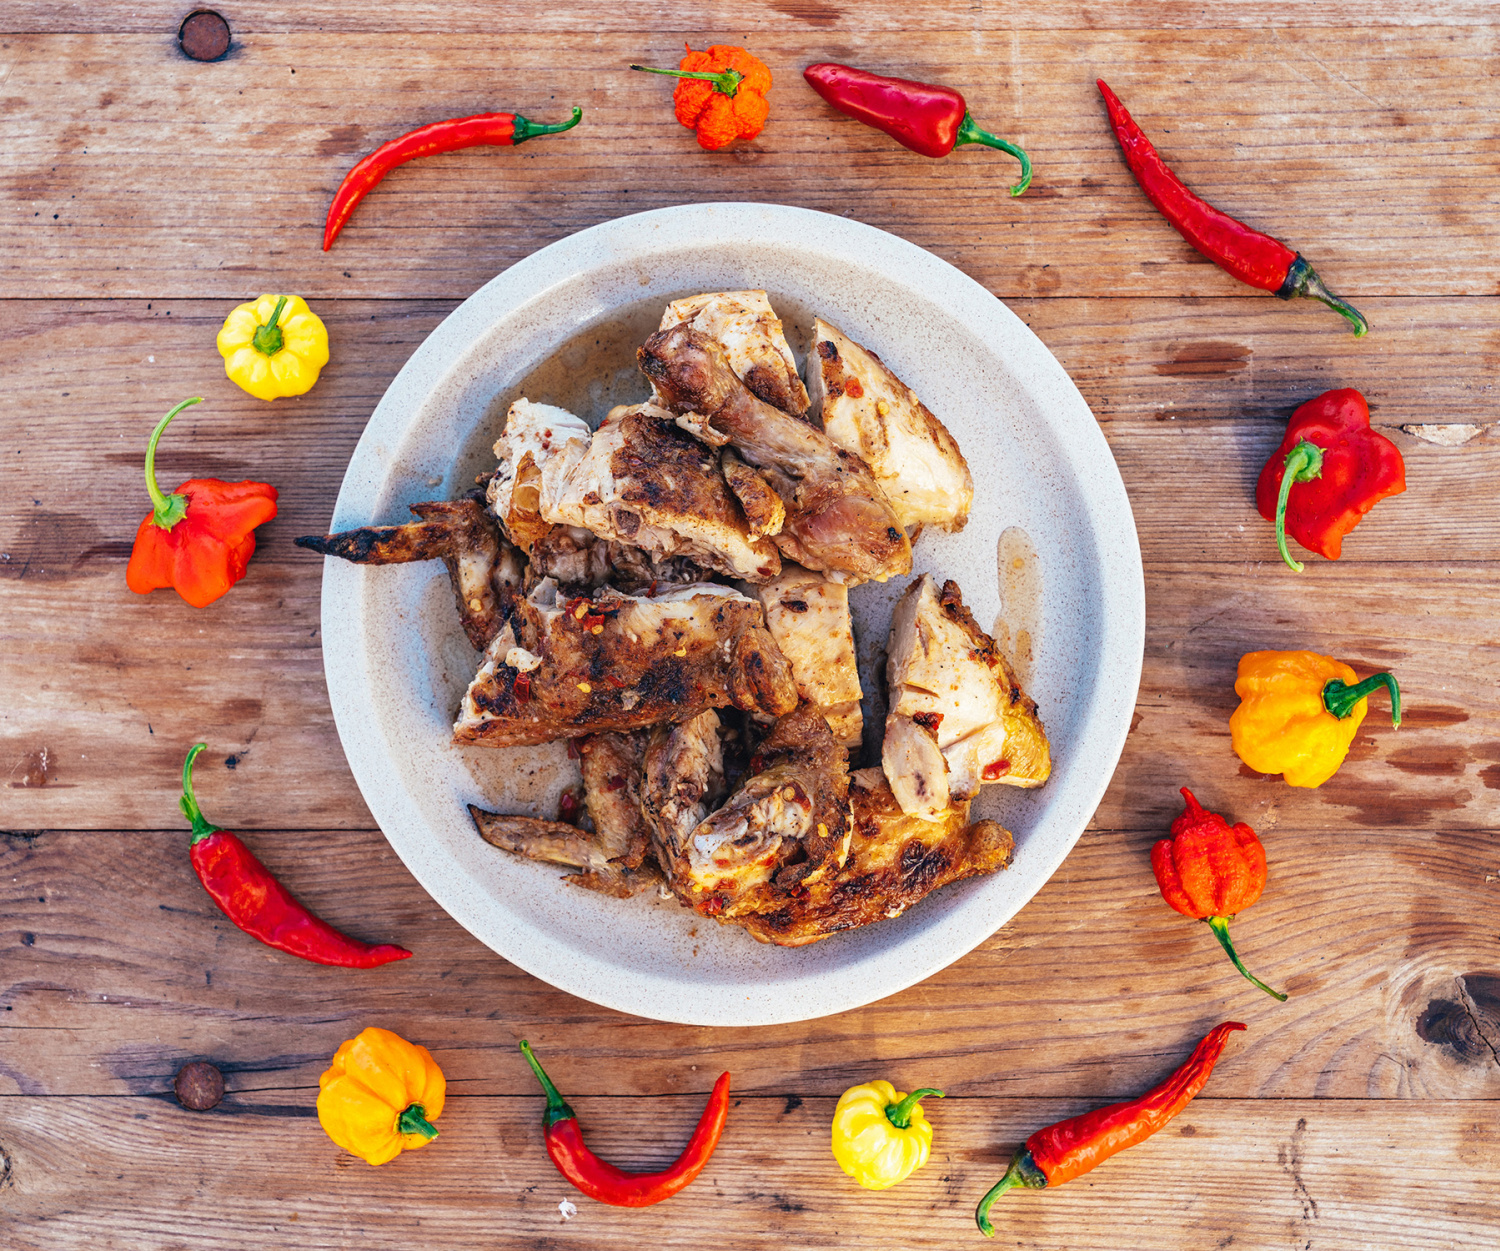 Piri piri chicken; photography by Haydon Perrior